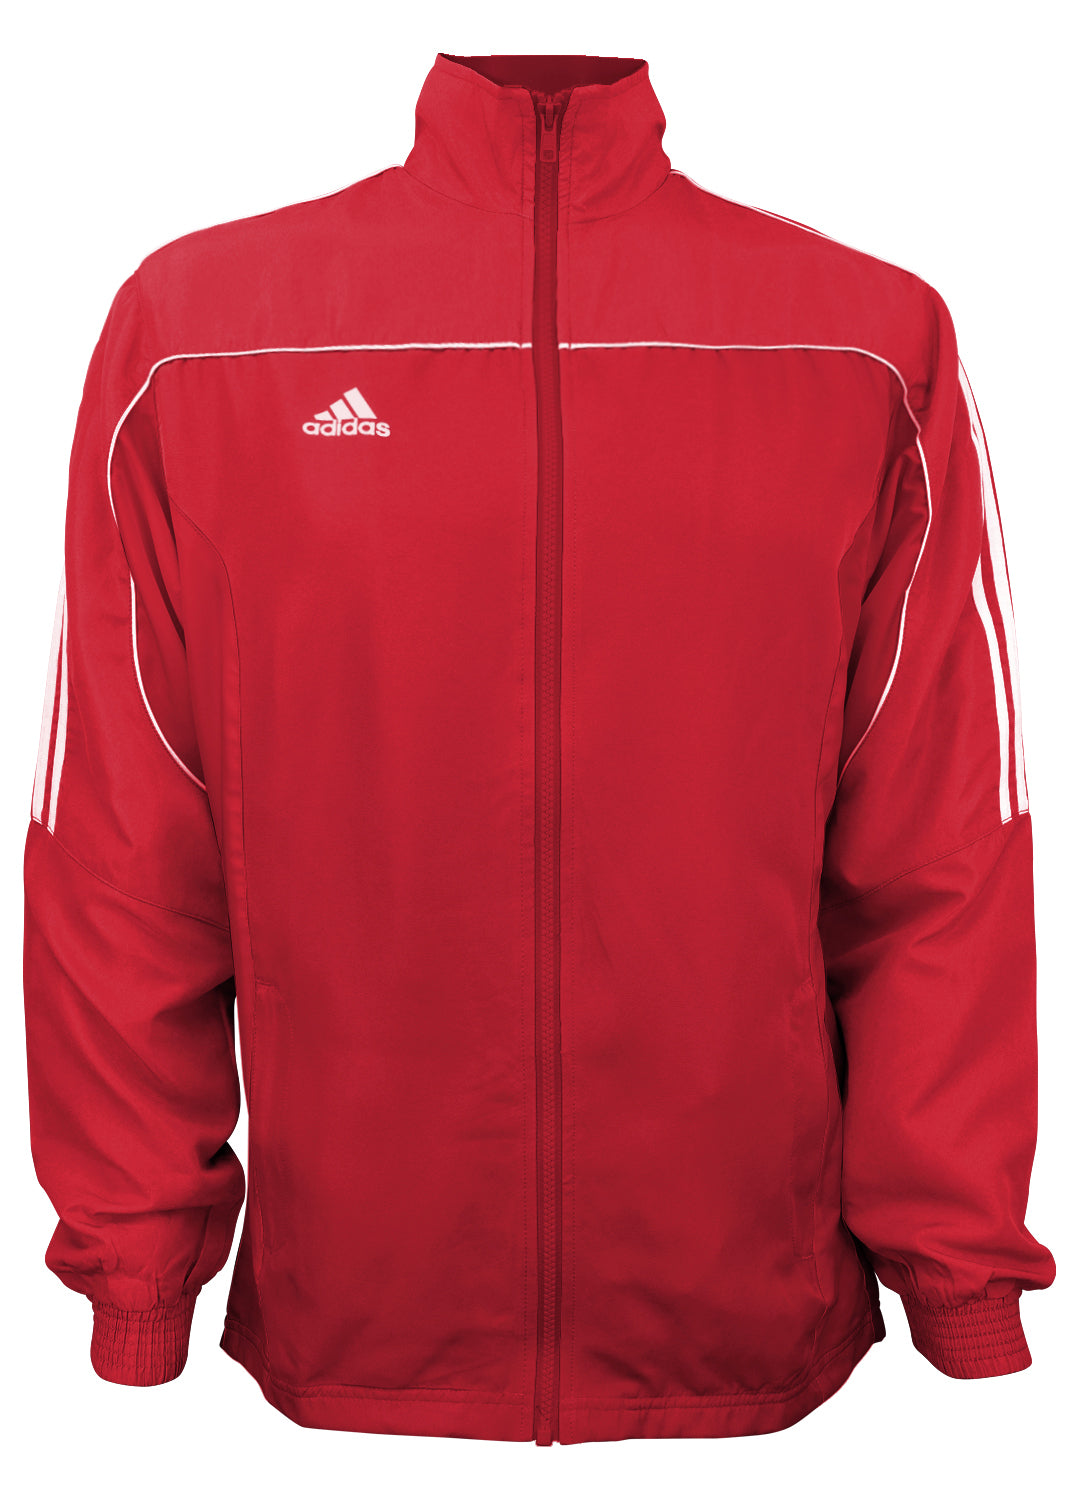 Custom adidas Martial Arts 3-Stripes Light Tracksuit 100% Polyester Long Sleeve Jacket